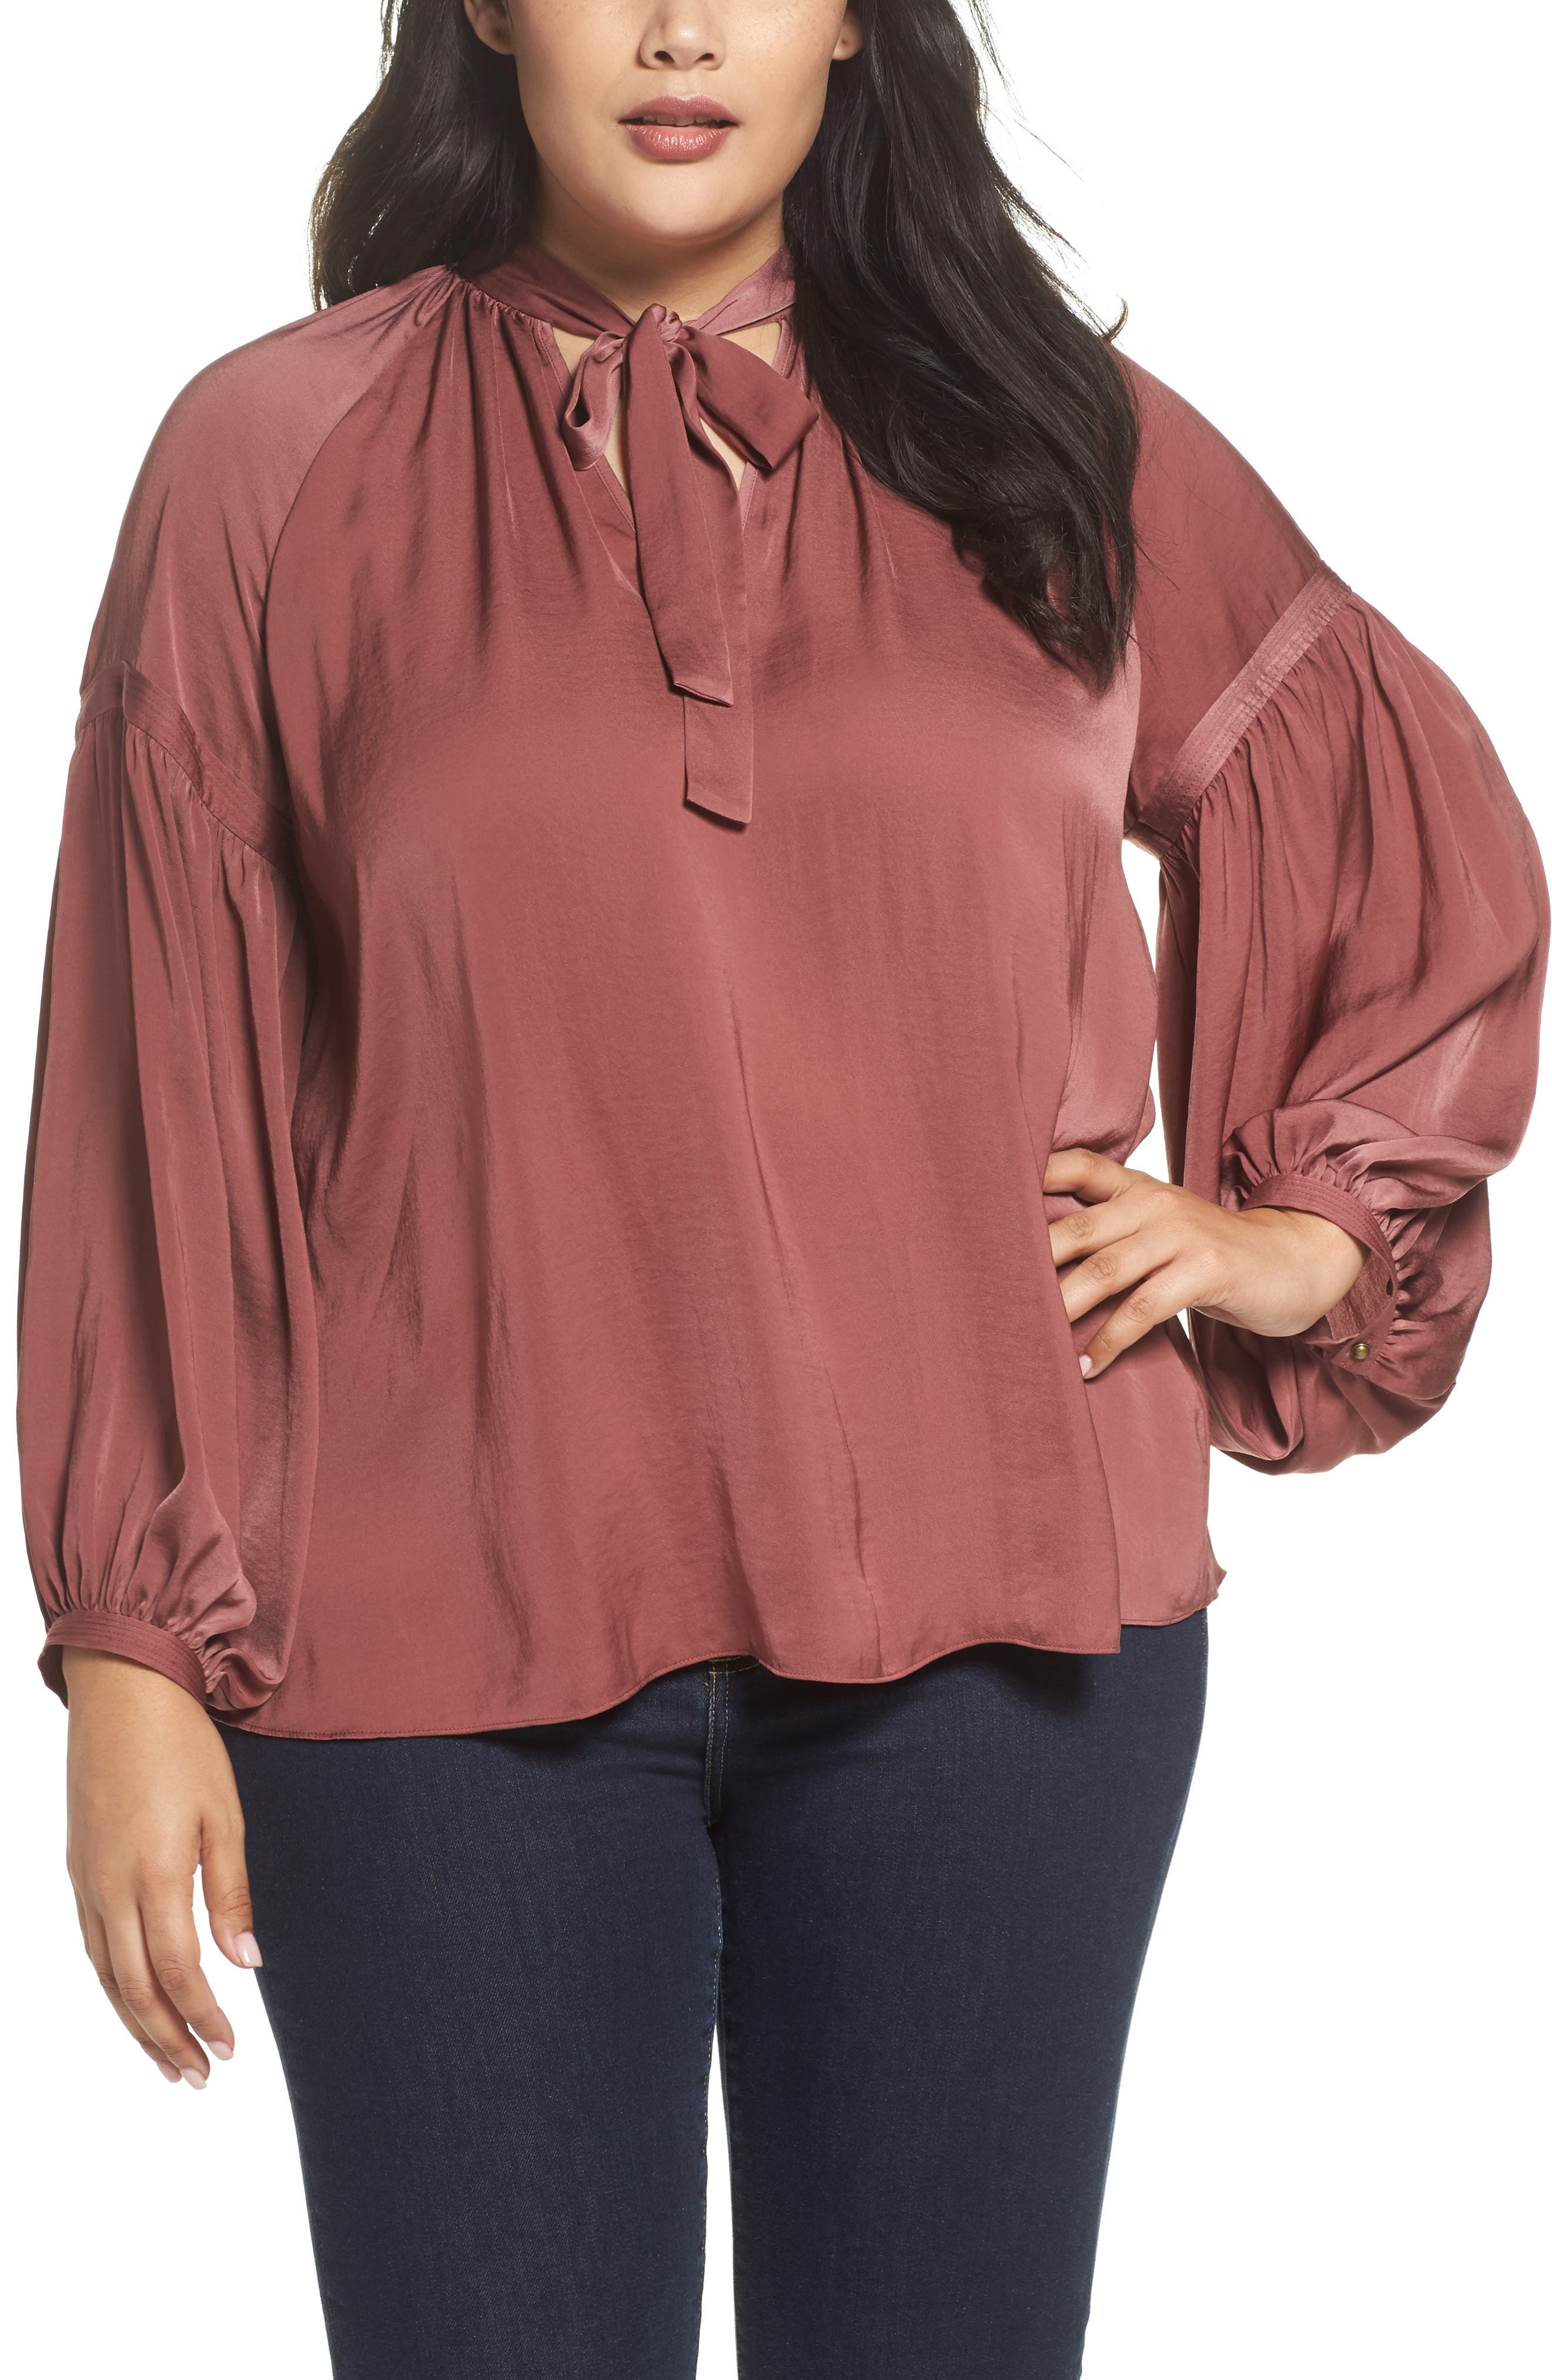 Alternate Image 1 Selected - Lucky Brand Jenna Peasant Top (Plus Size)